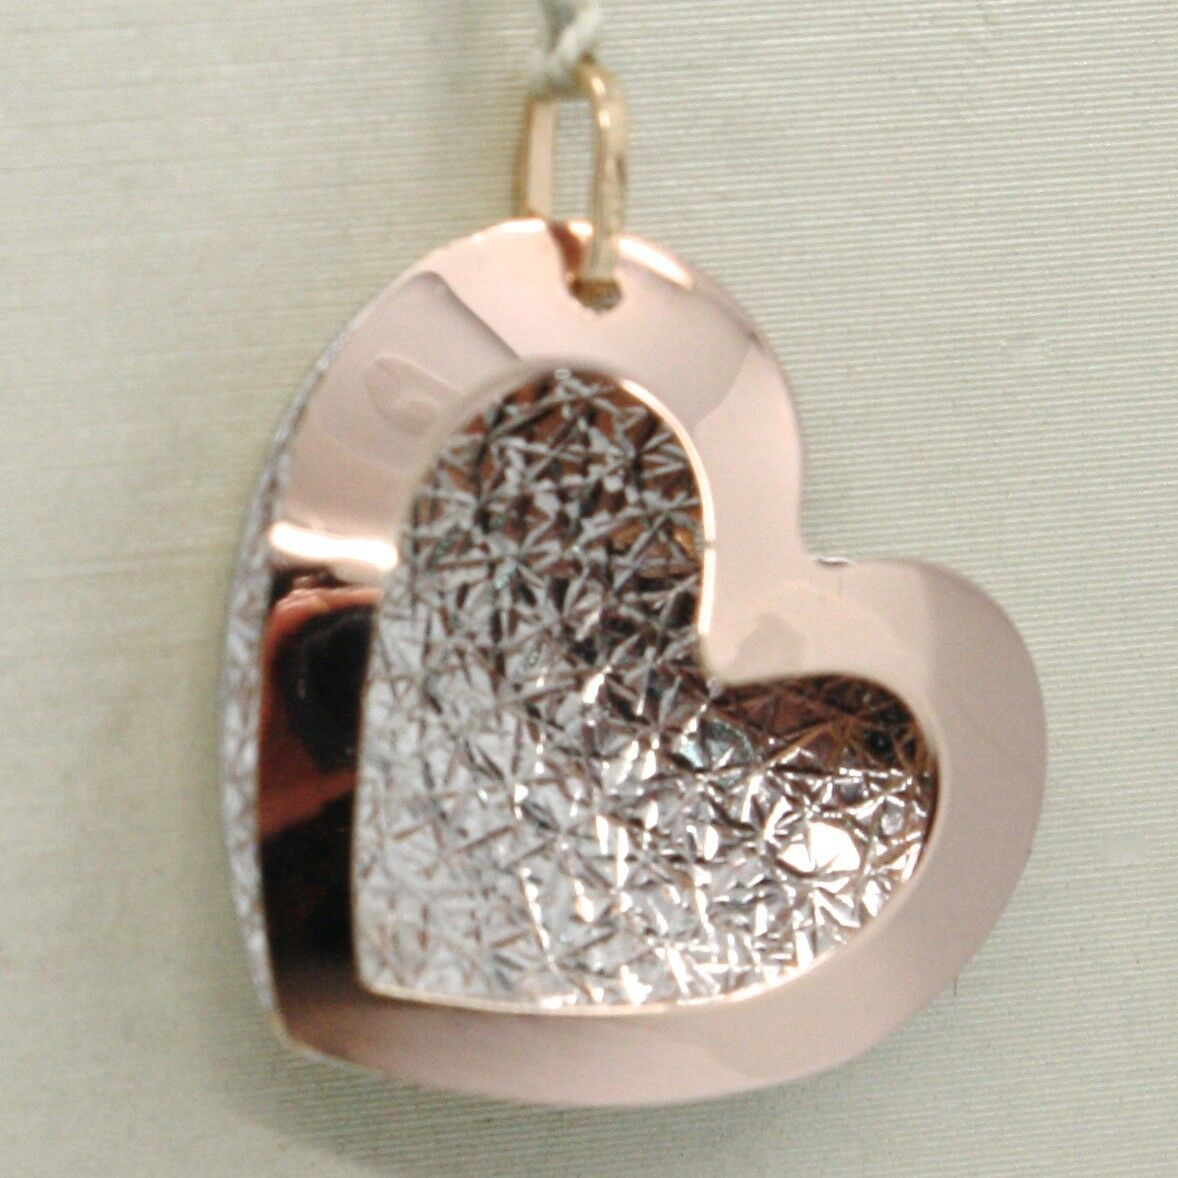 18K ROSE & WHITE GOLD DOUBLE HEART PENDANT, CHARMS, FINELY WORKED, MADE IN ITALY